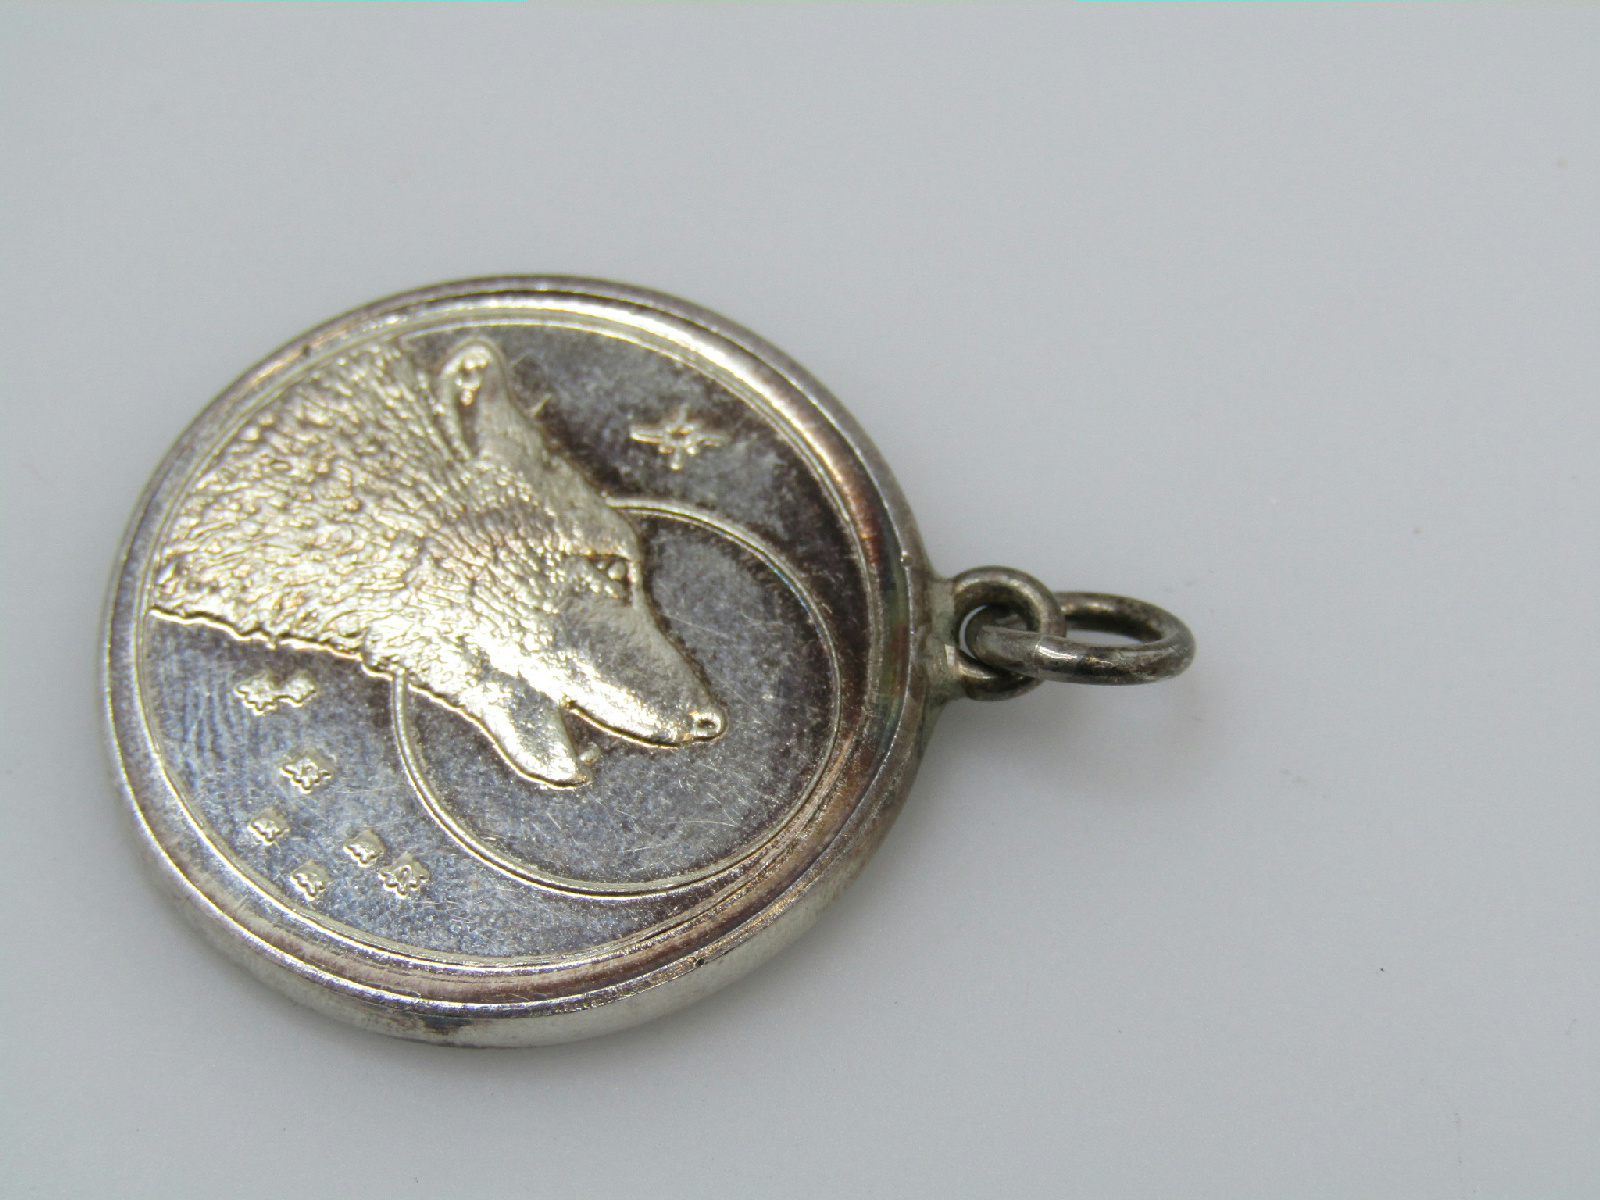 999 silver marked jewelry pendant coin shaped howling